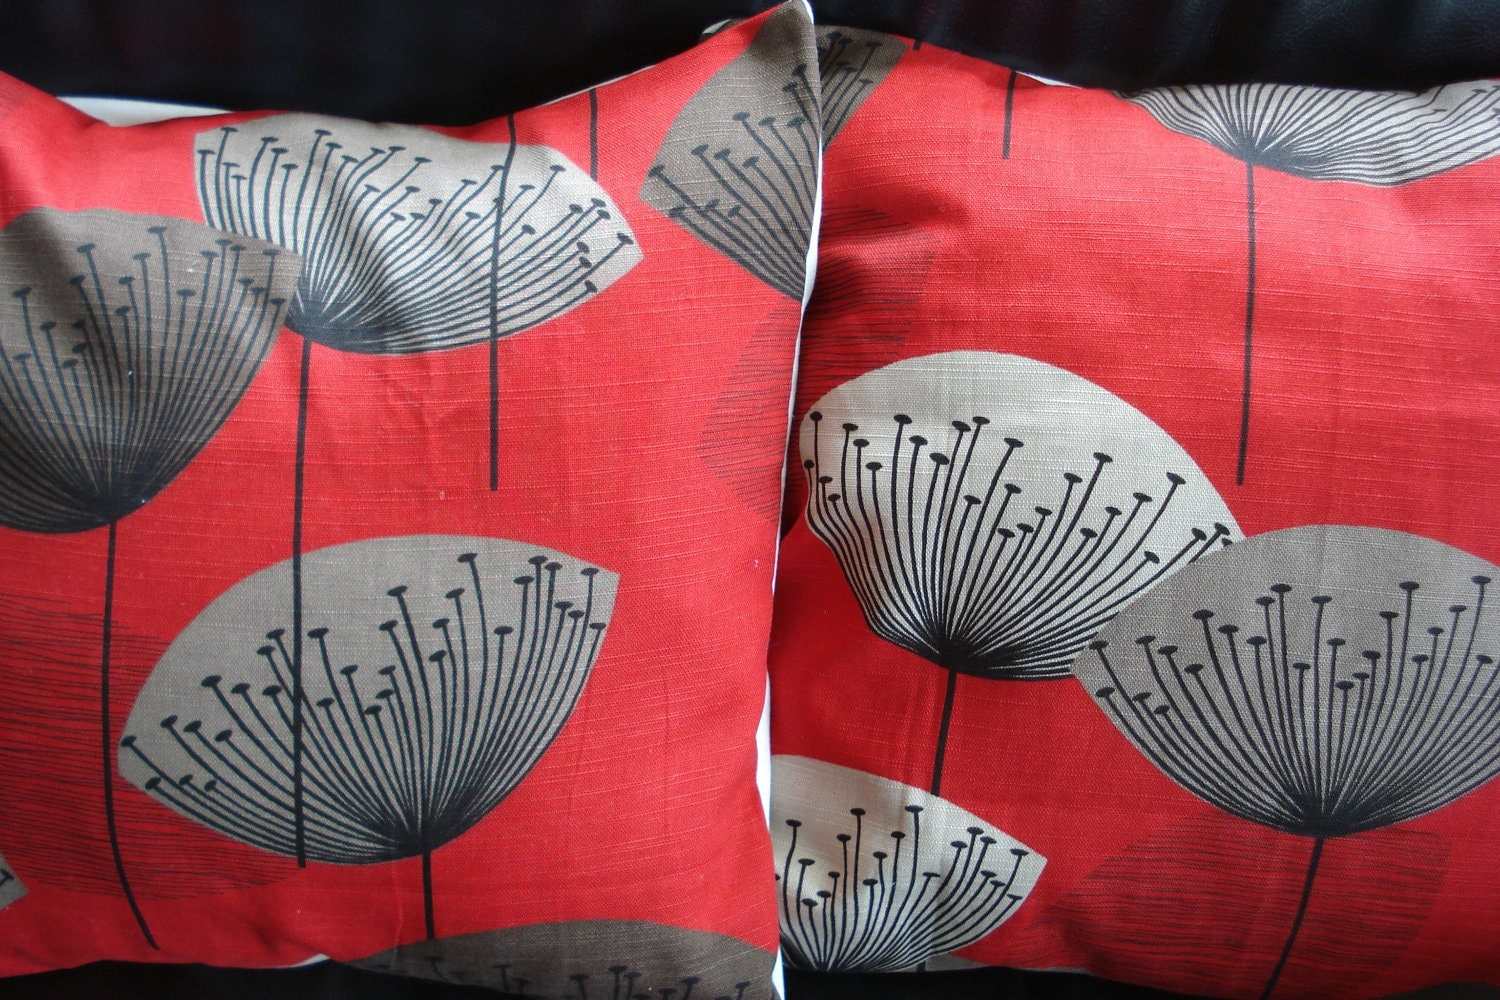 Decorative Pillows Red And Black : Throw pillows covers red grey gray black dandilion by VeeDubz